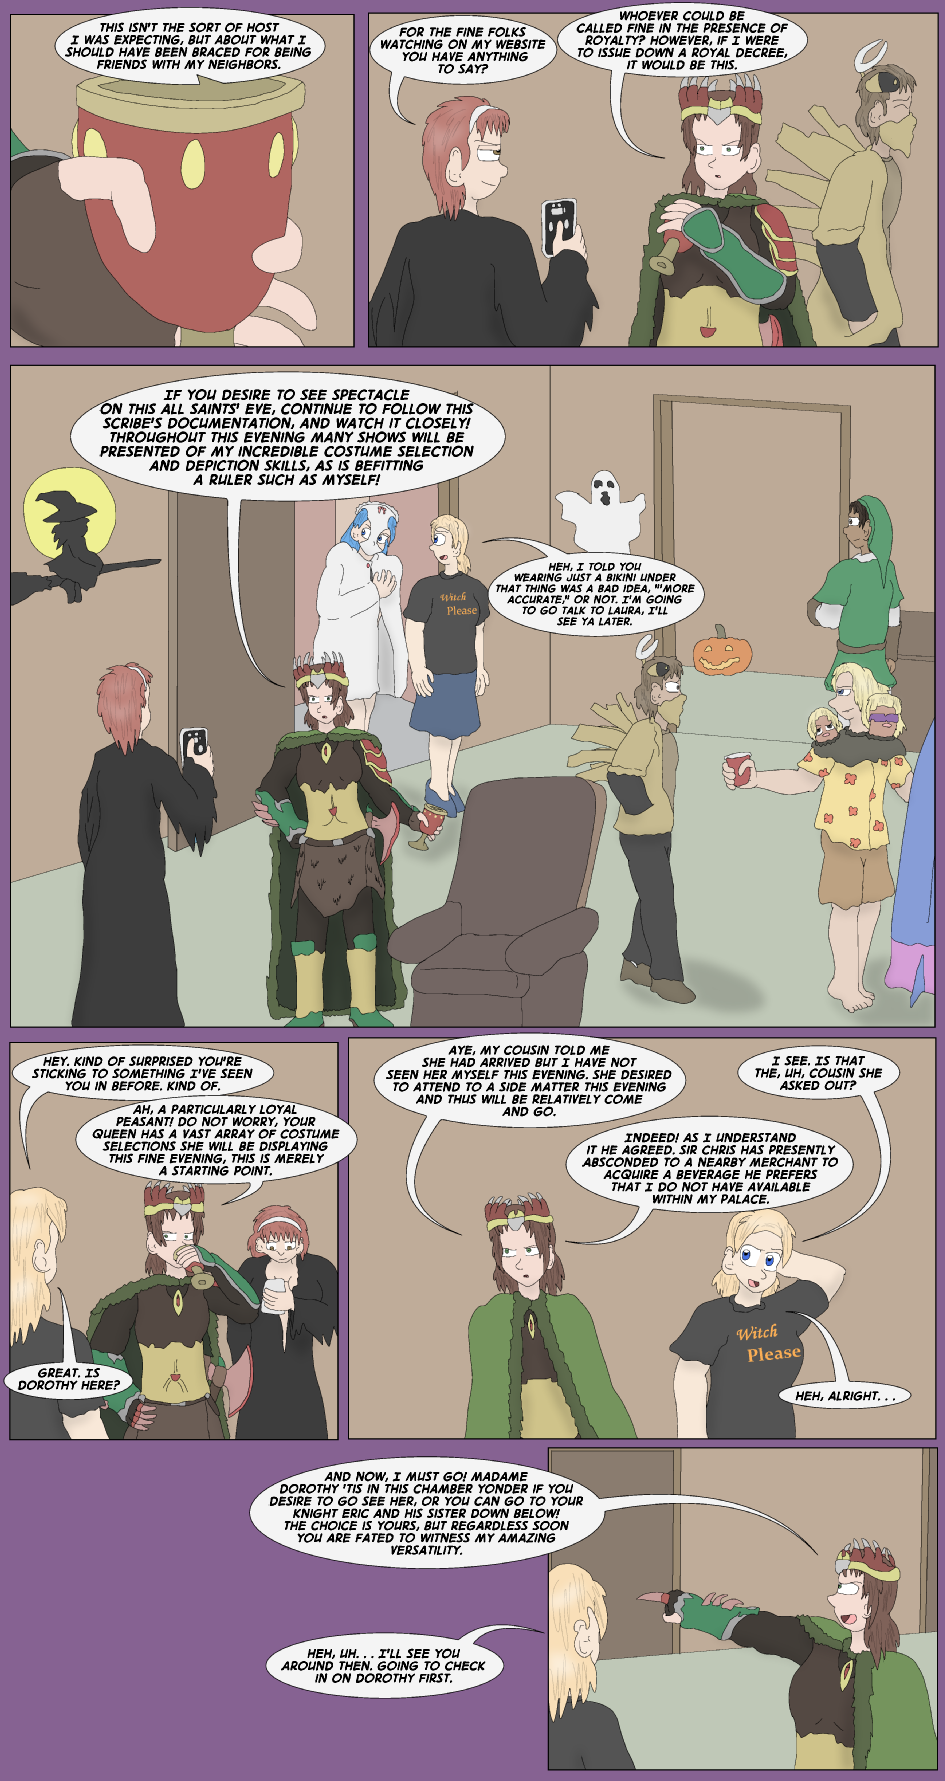 The DeKalb County Public Access Halloween Special, Page 6